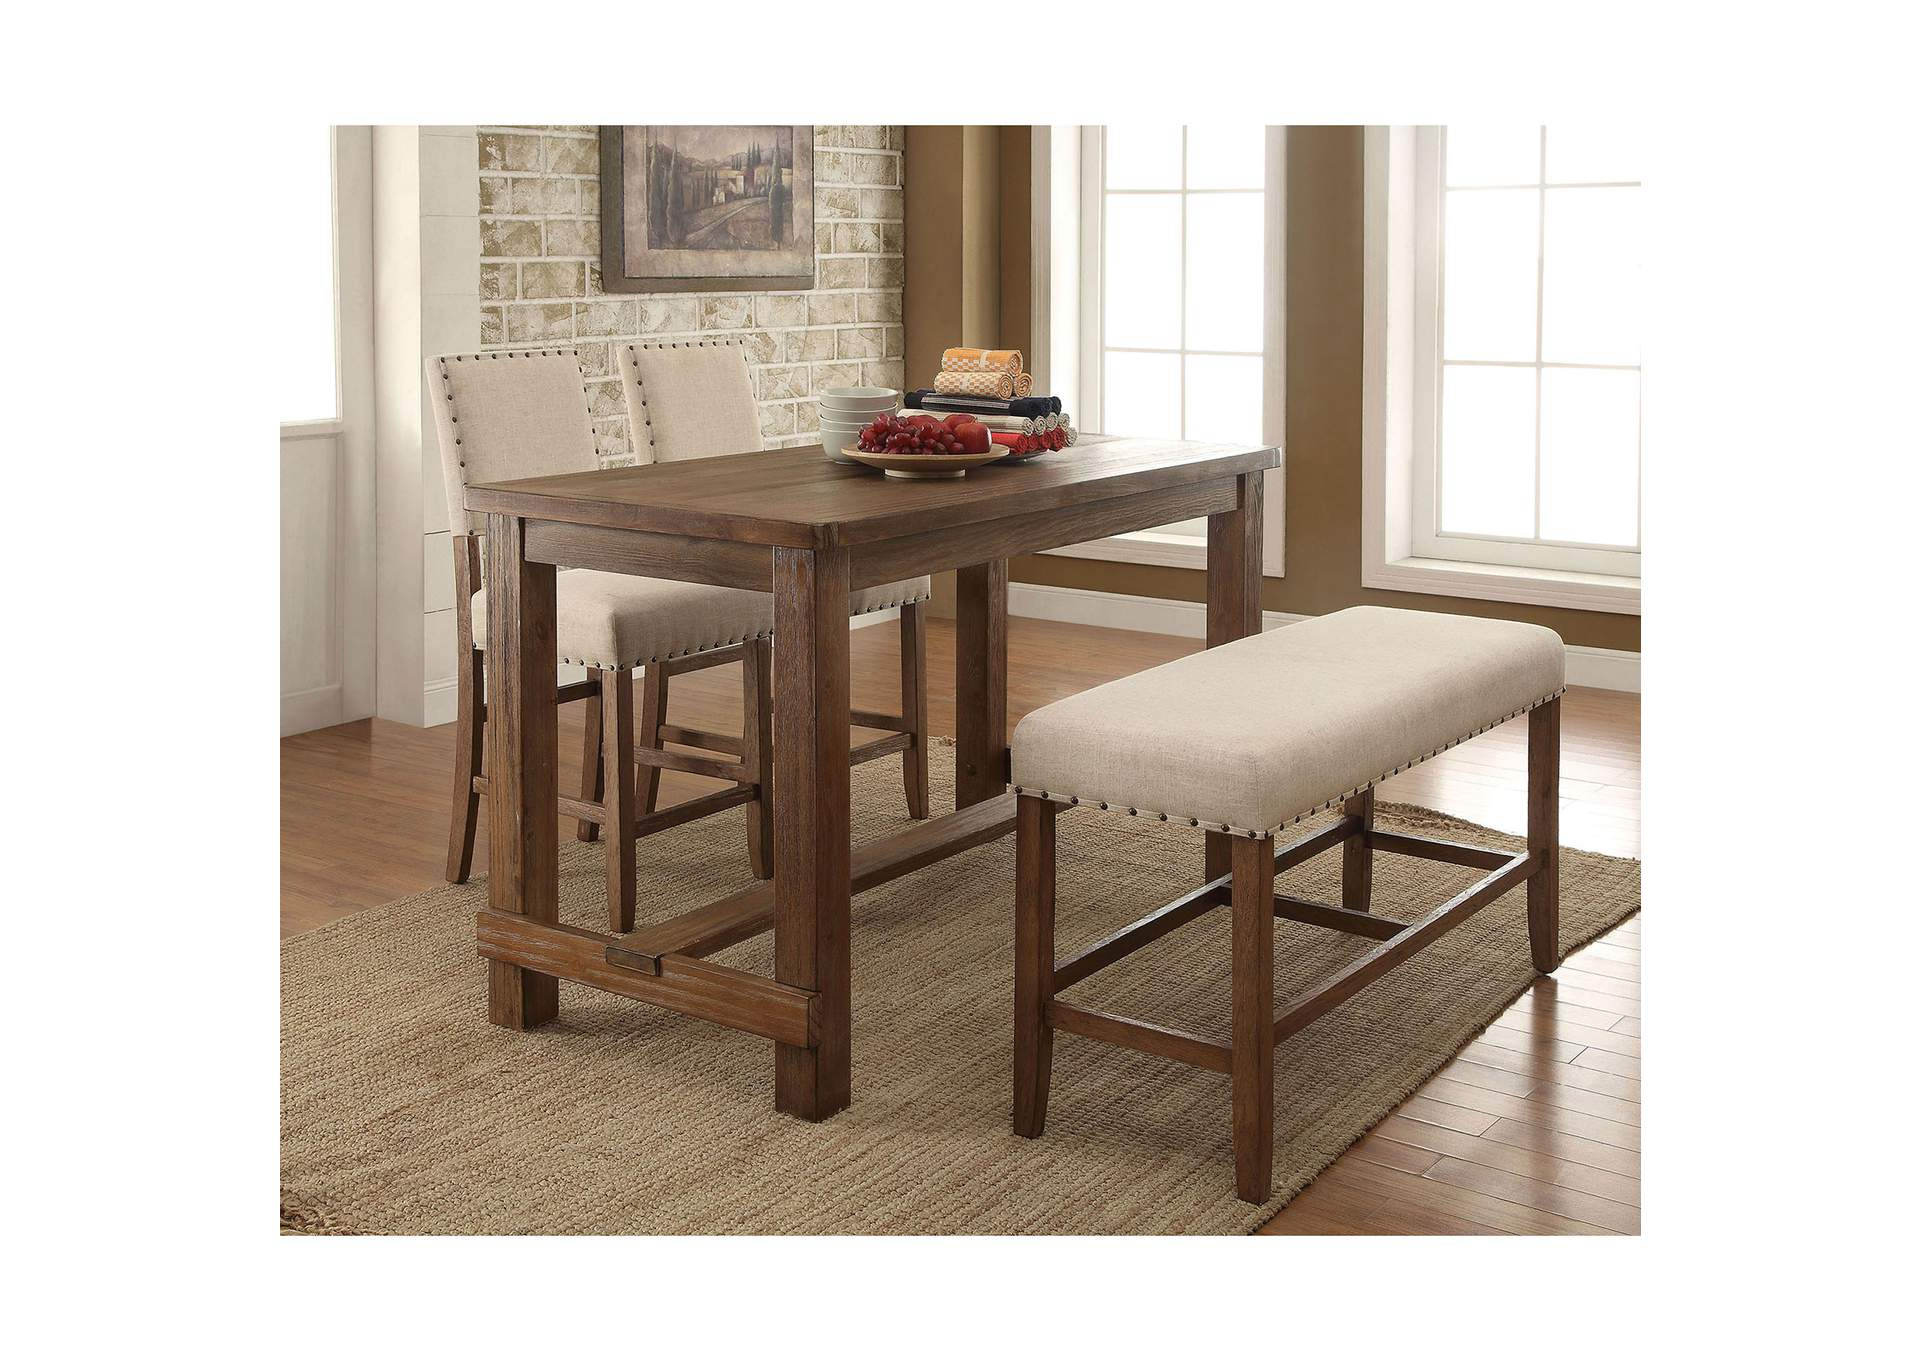 Wonderful Sania Natural Tone Counter Height Table W/Bench And 2 Counter Height  Chairs,Furniture